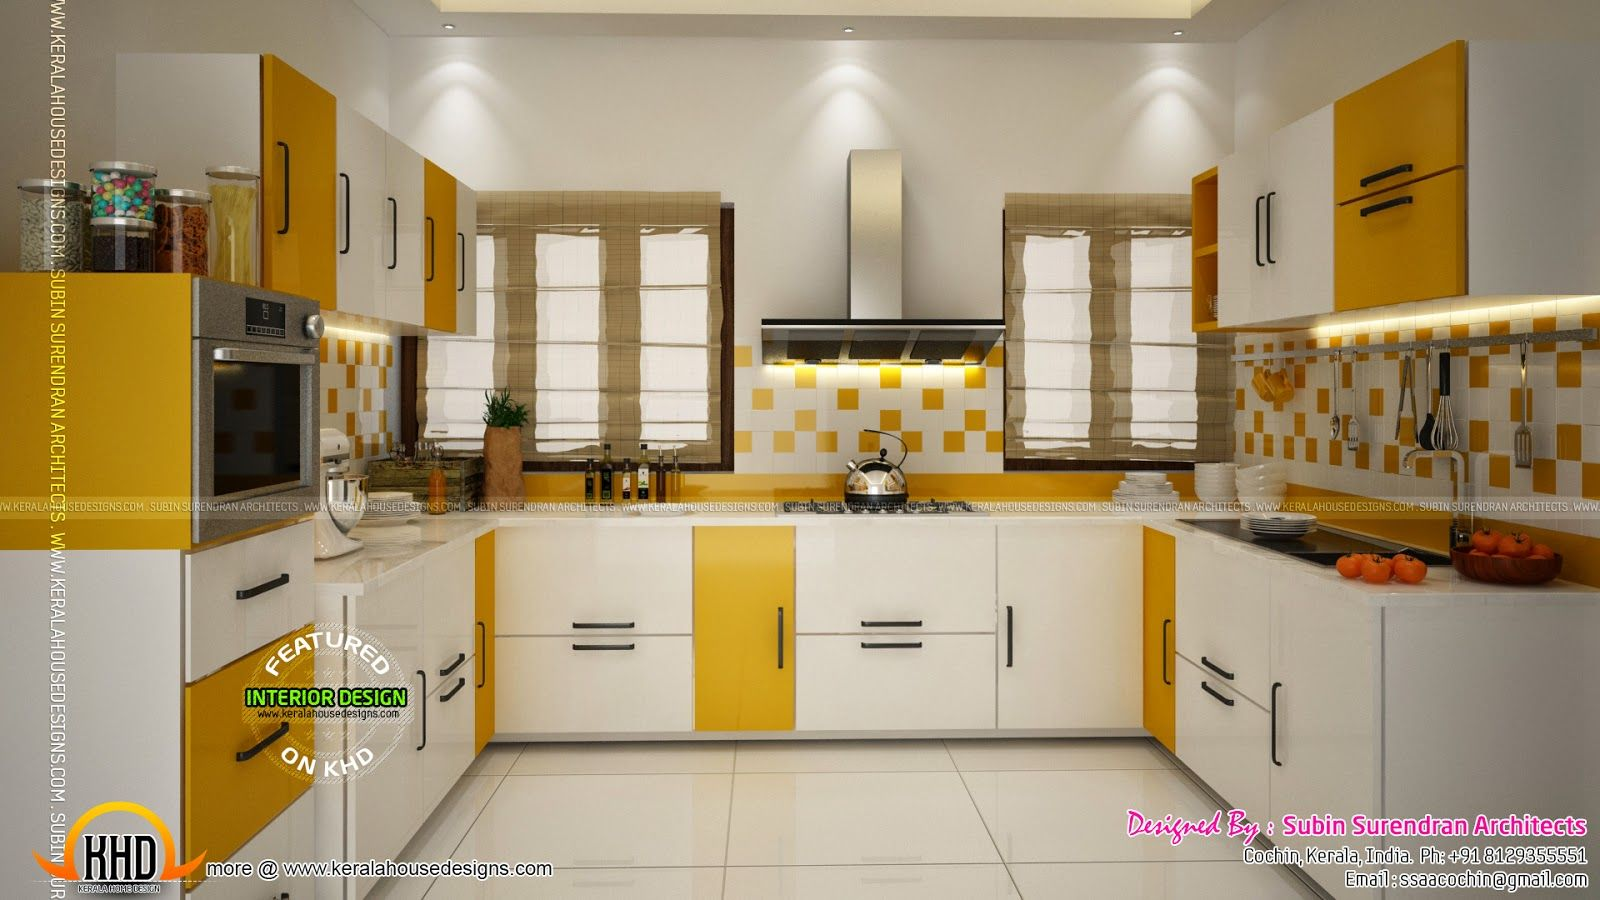 kerala home design floor plans interior design cochin On kerala home design interior kitchen